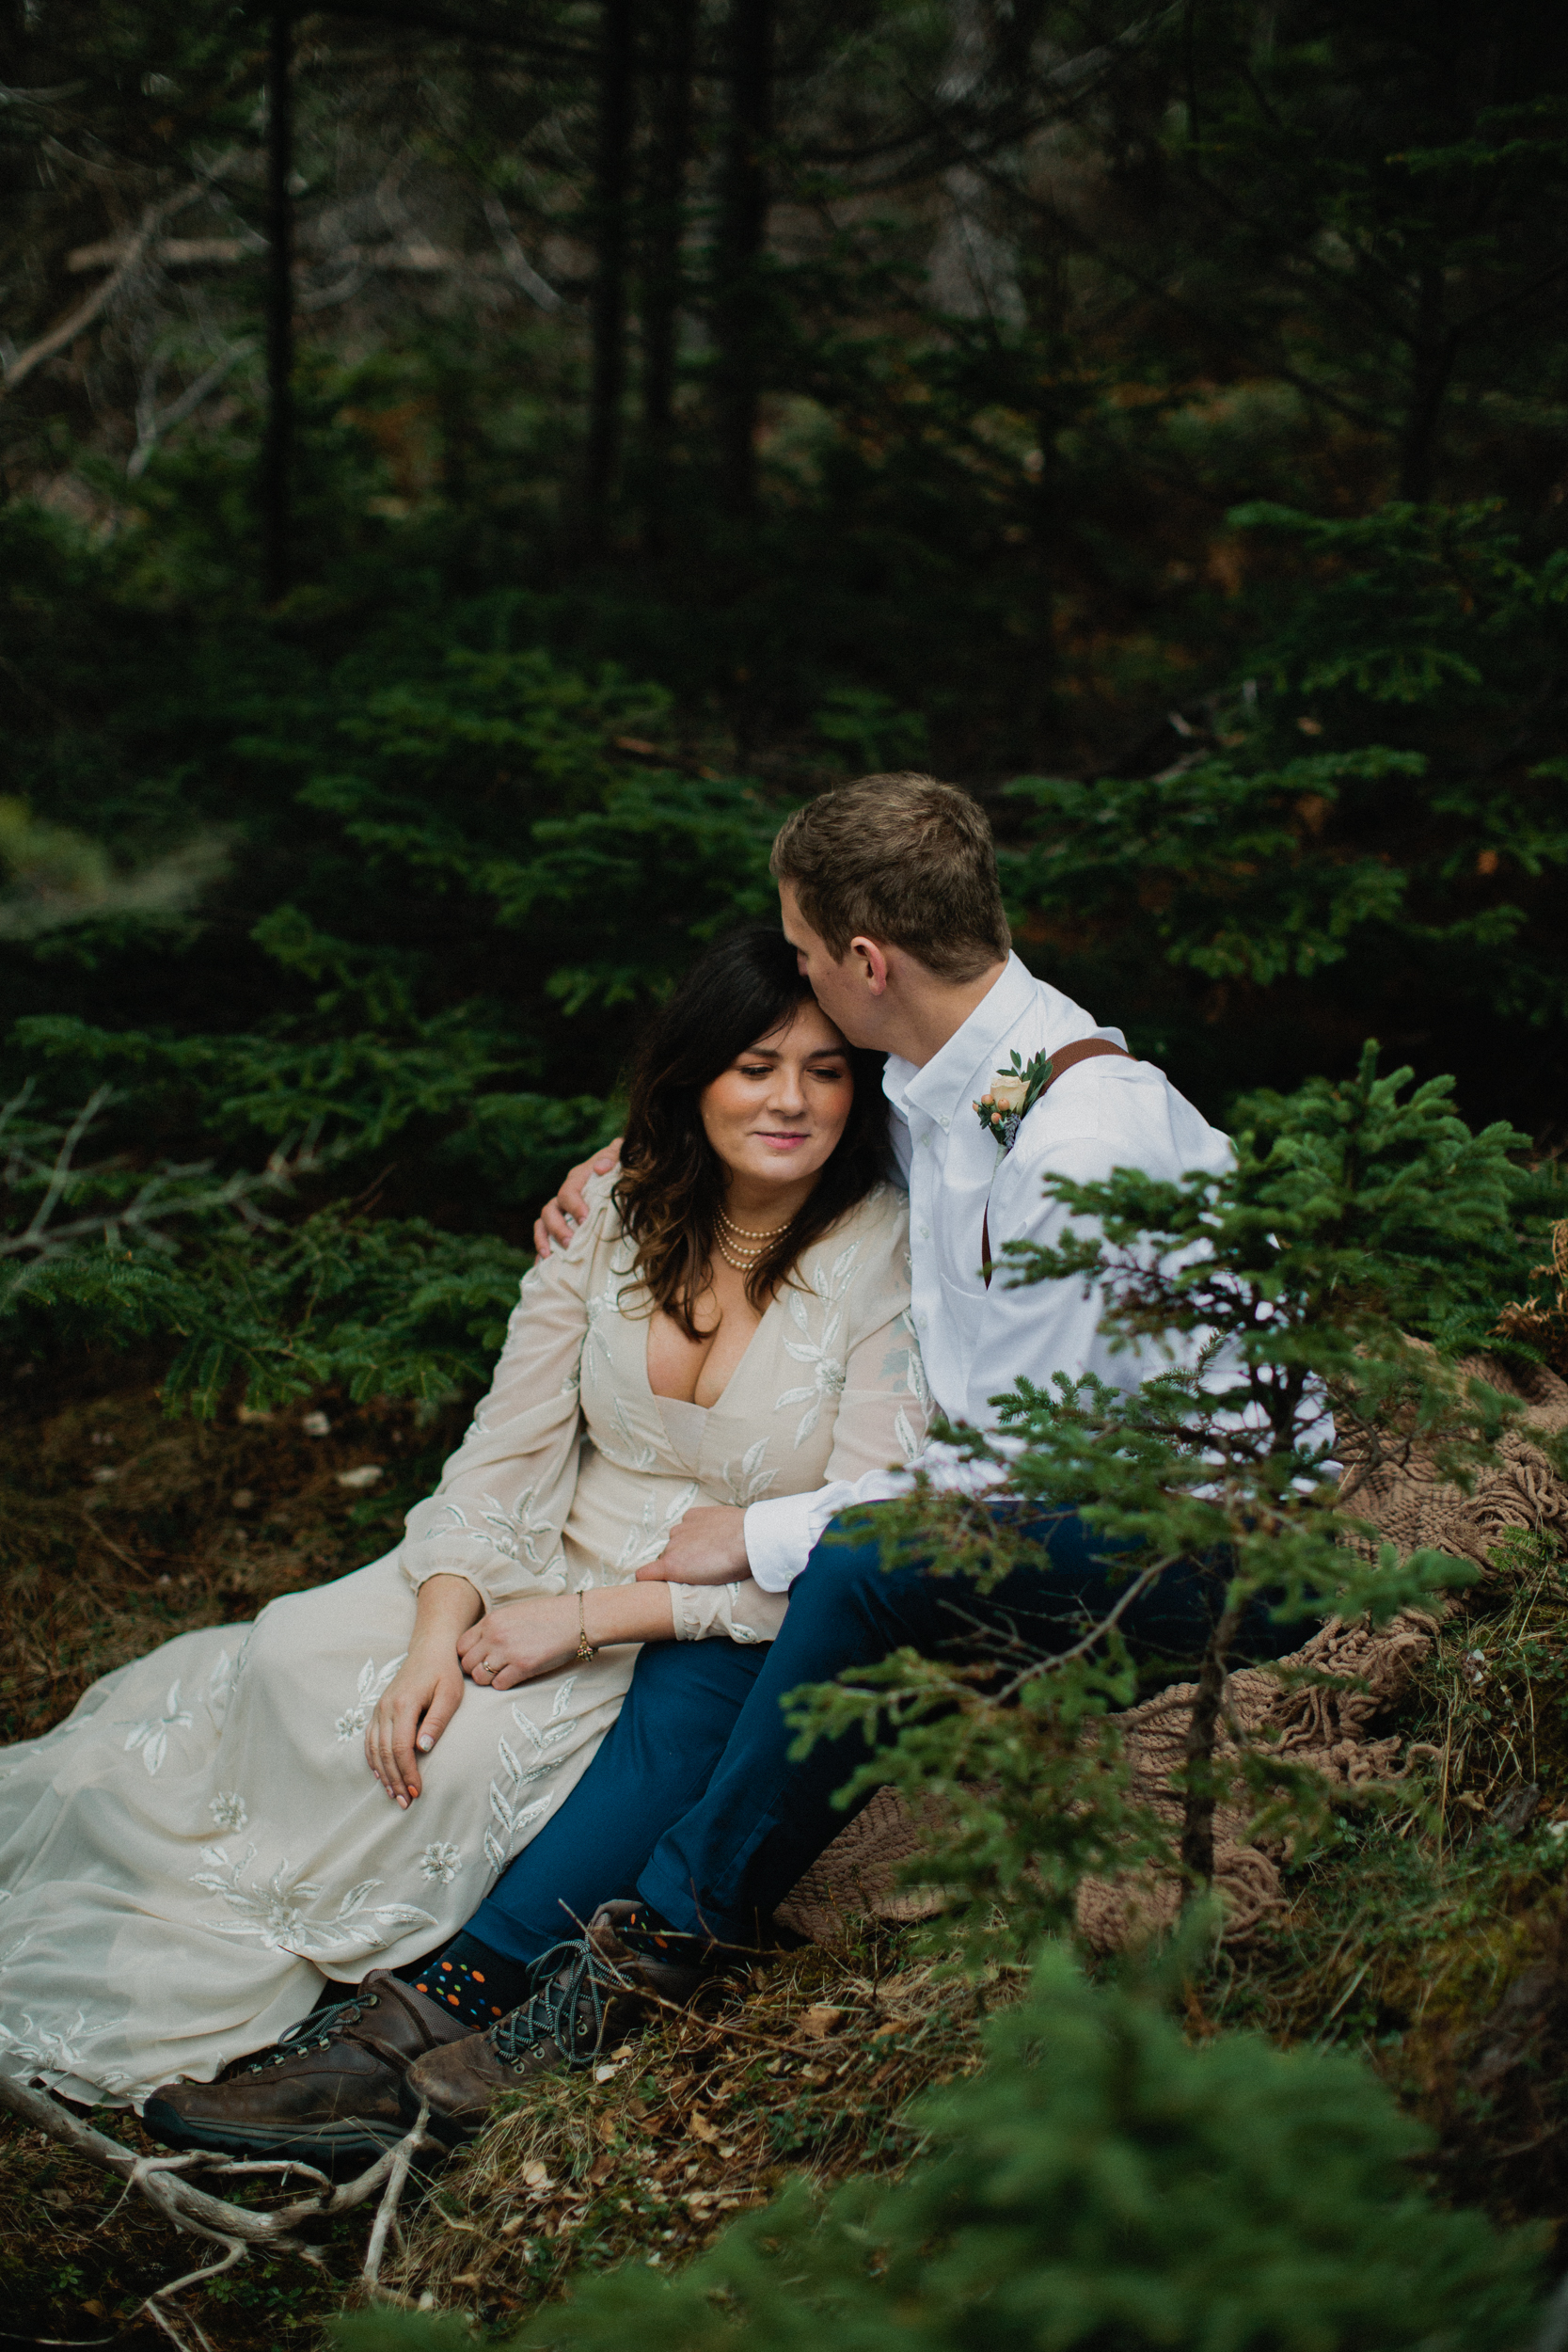 Acadia-Elopement-Photos-399.jpg